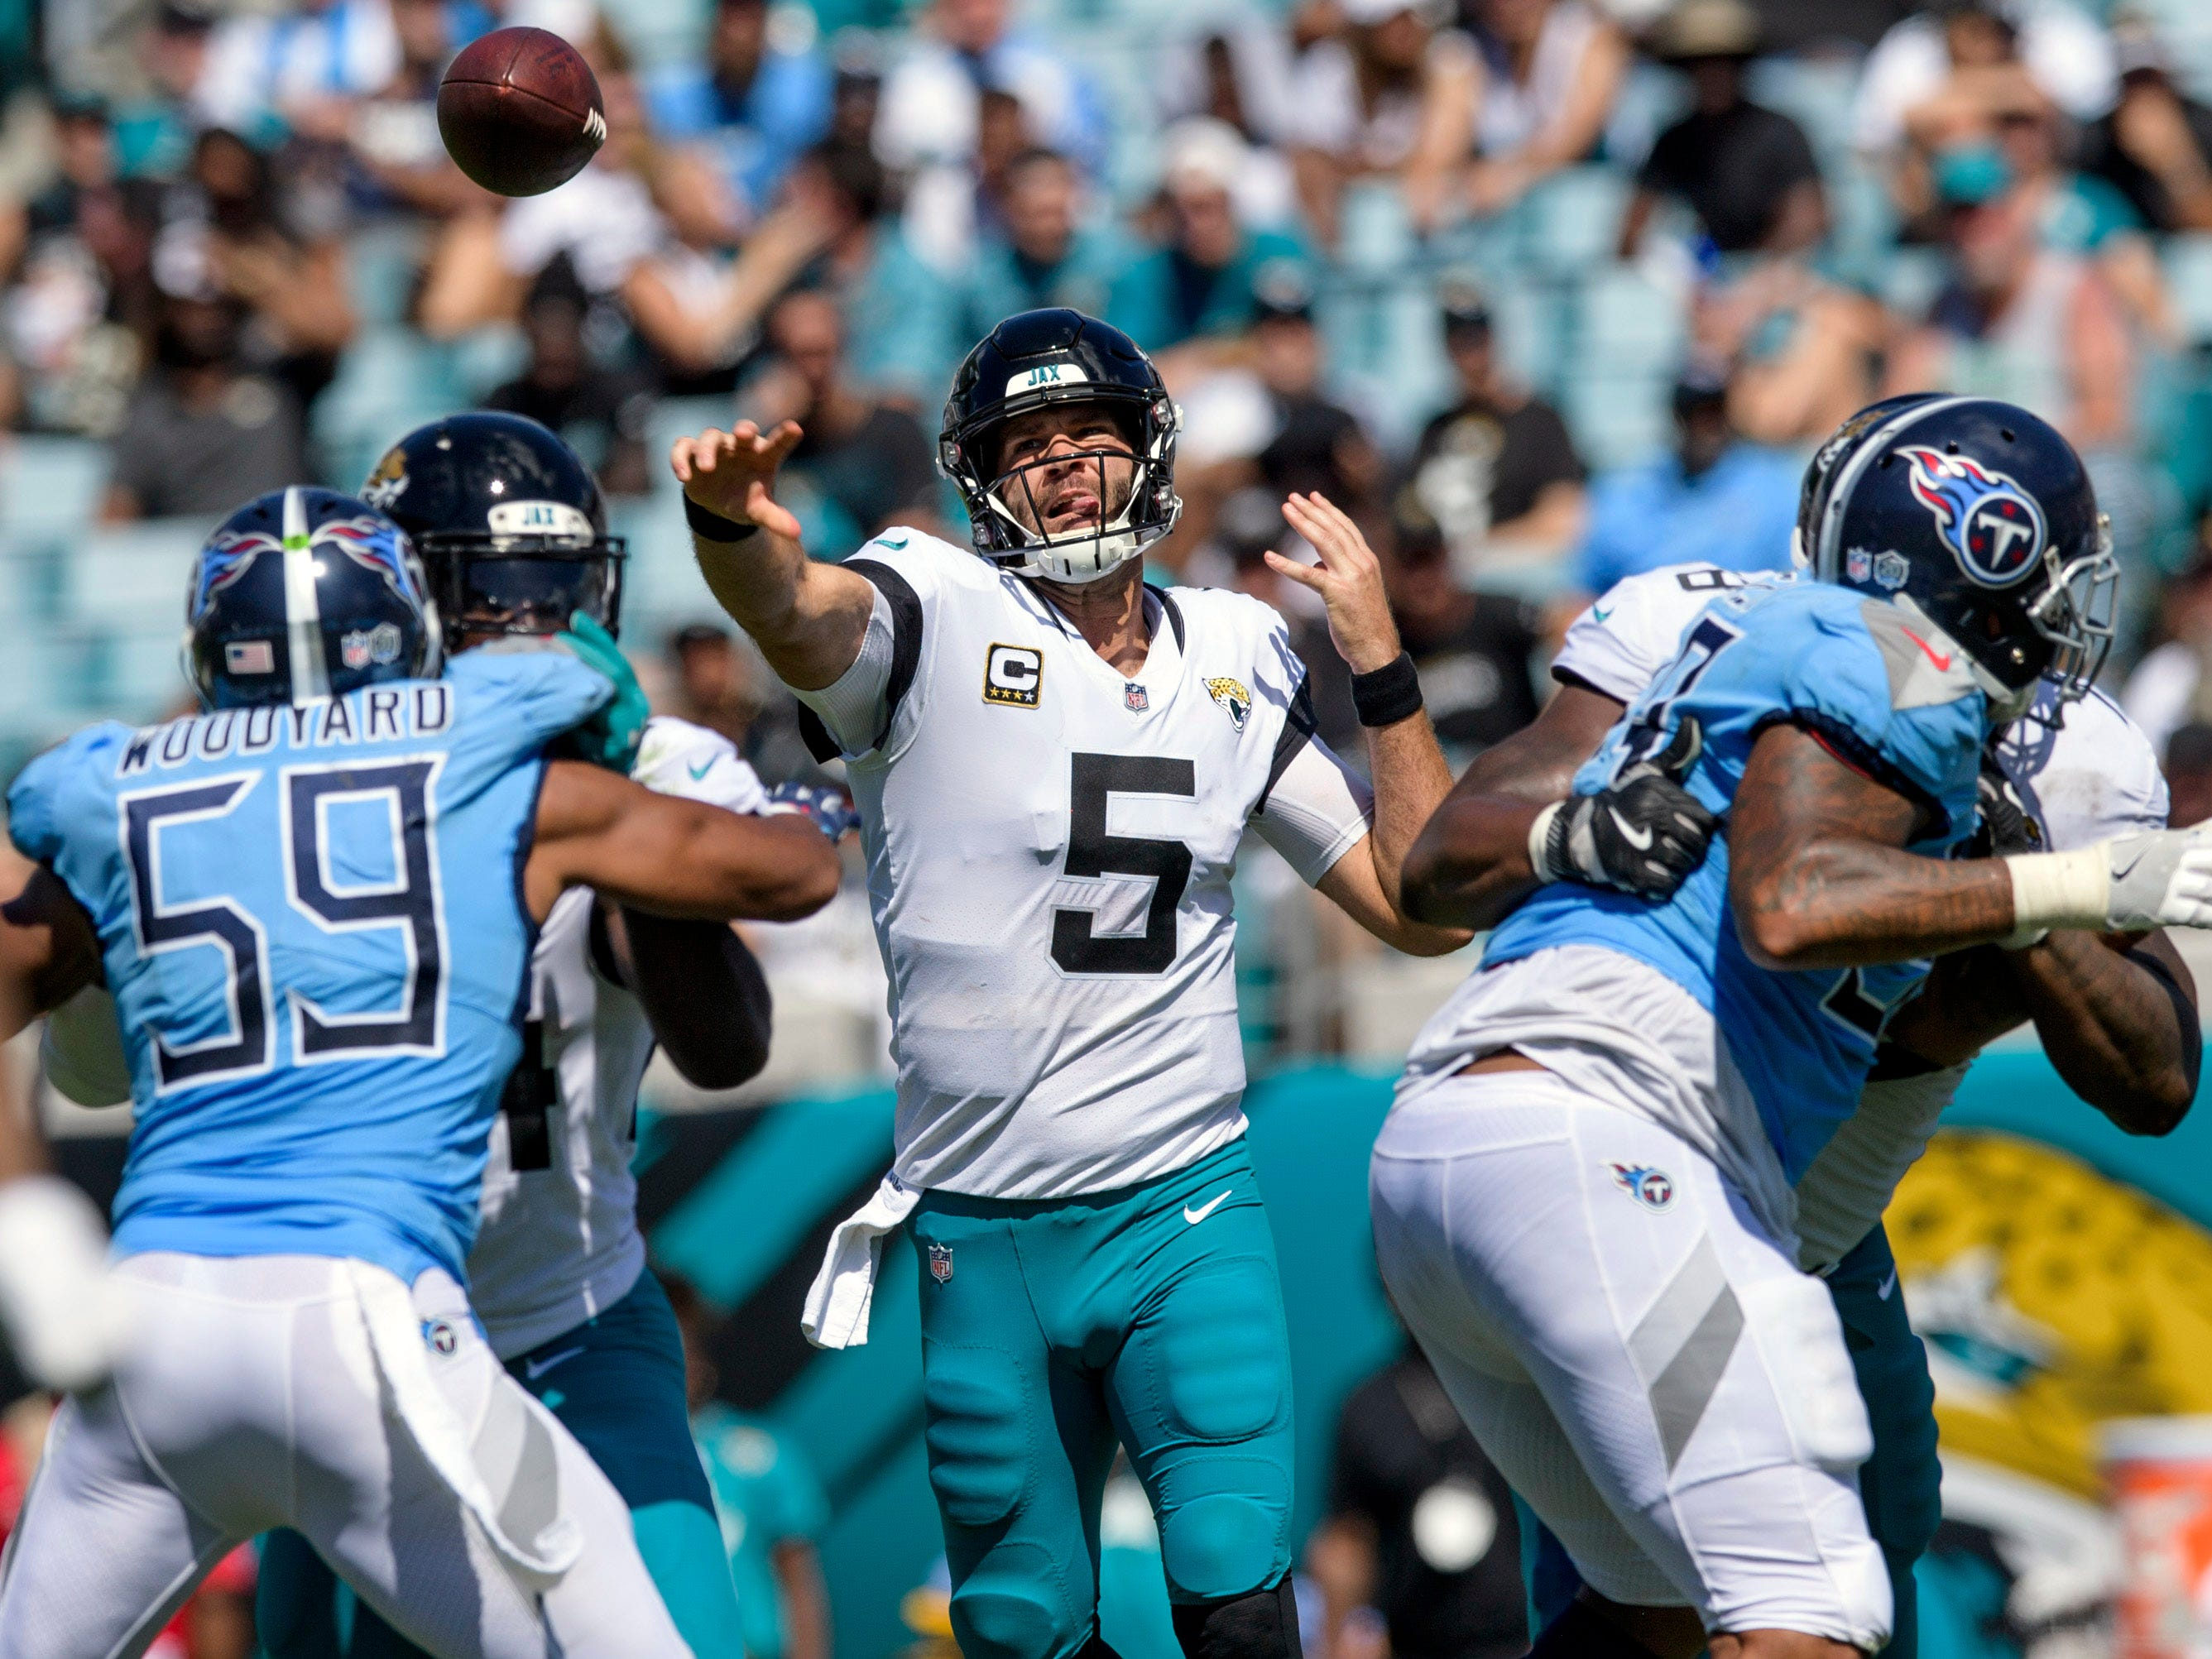 8. Jaguars (1): Hey, @BortlesFacts, your boy is on pace to go 0-6 against the AFC South this year, which could make it tough to reach Super Bowl LIII.